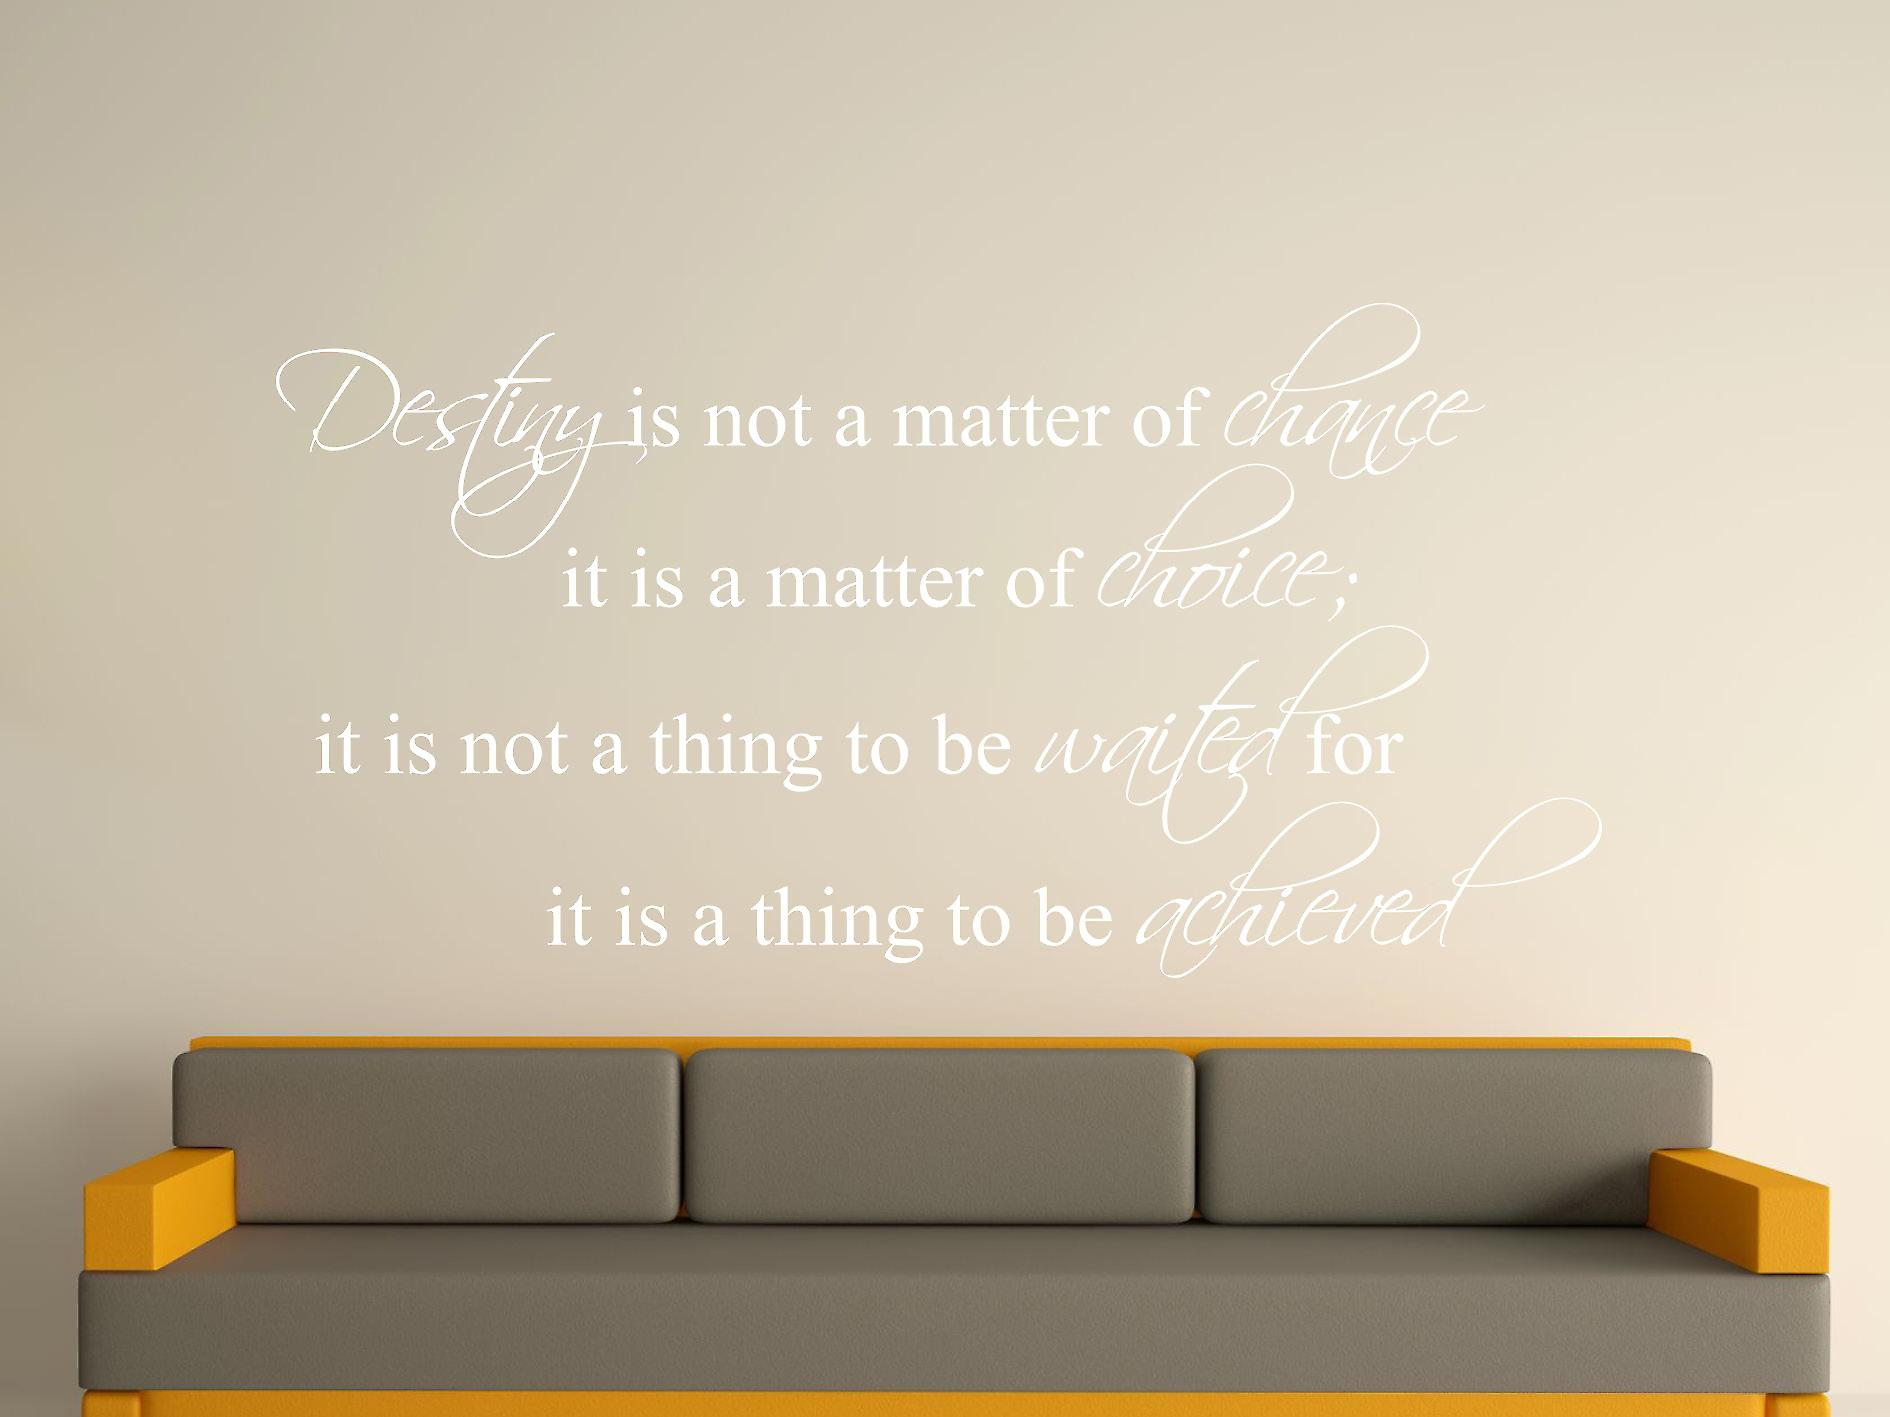 Destiny Is Not A Matter of Chance Wall Art Sticker - White